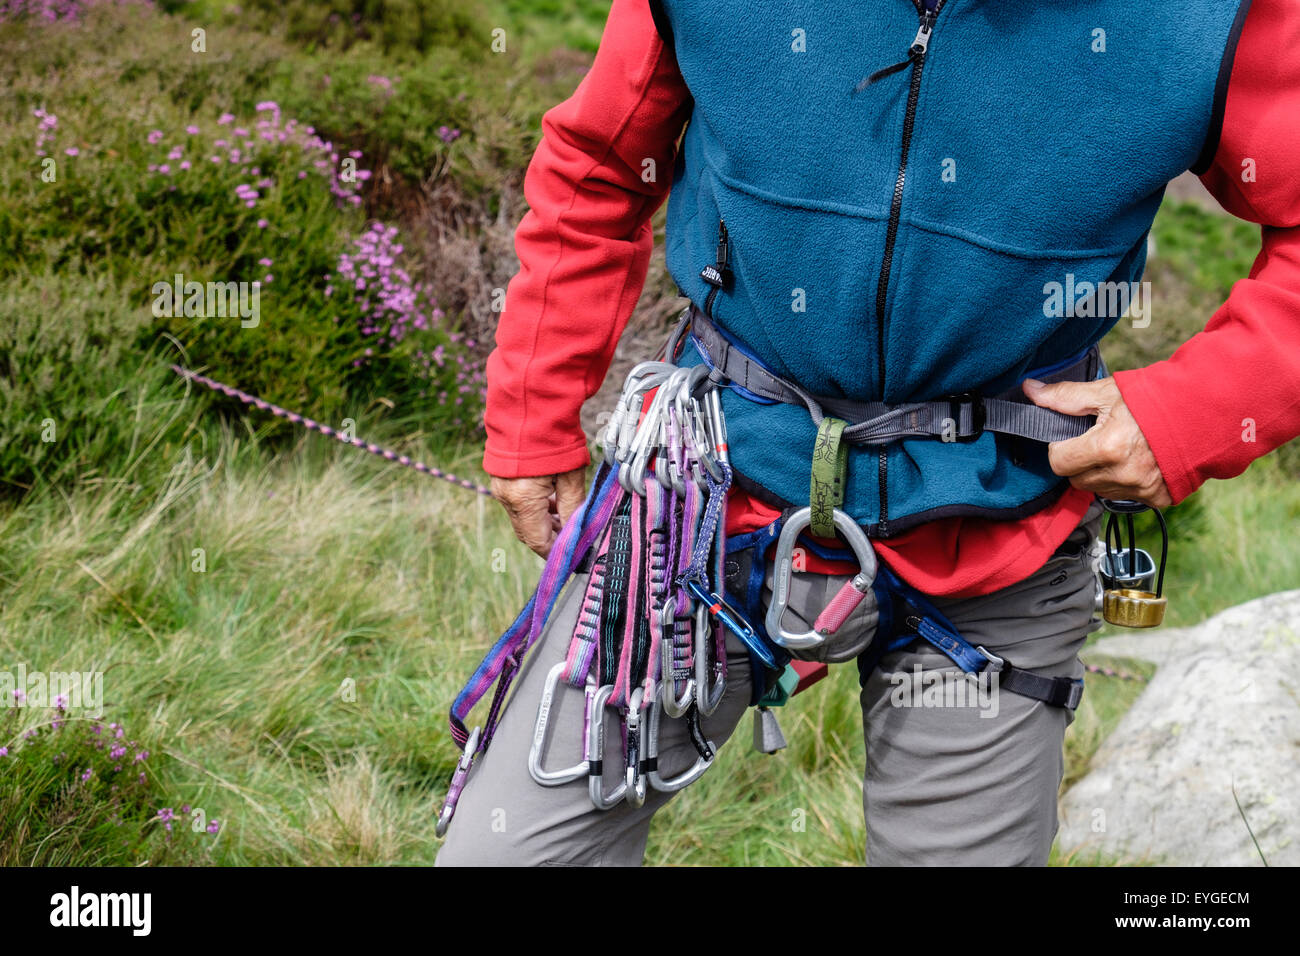 A rock climber ing a climbing harness with rack of runners and ...